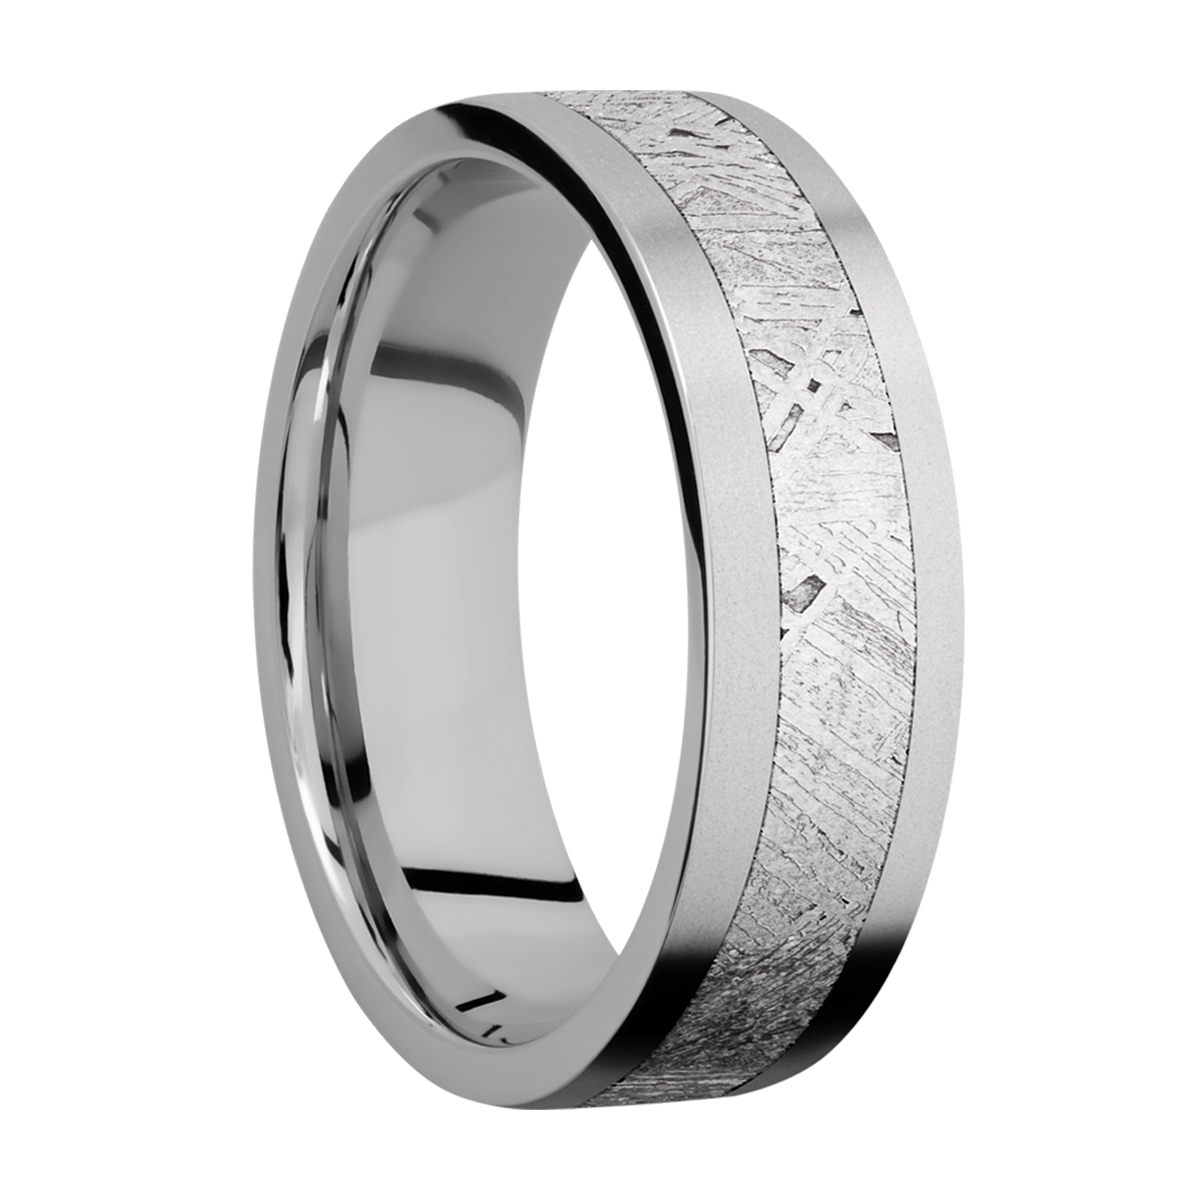 Lashbrook 7F14/METEORITE Titanium Wedding Ring or Band Alternative View 1